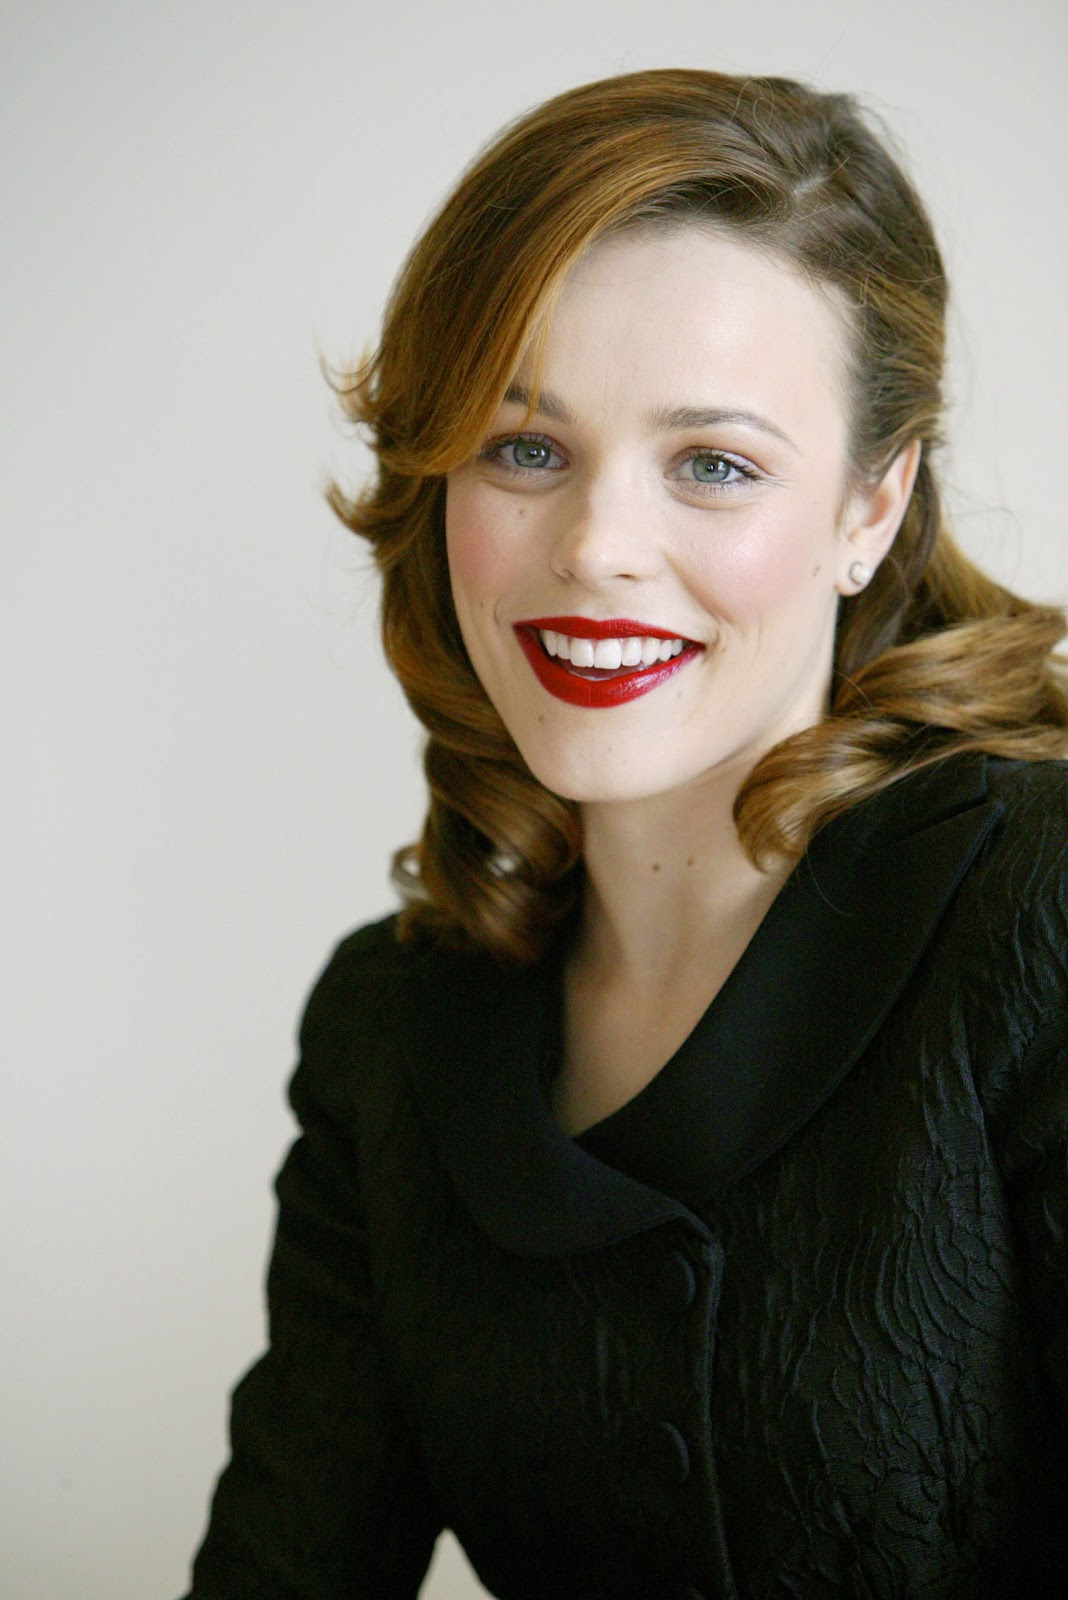 Rachel Mcadams Official Fan Site | News, Images, Movies